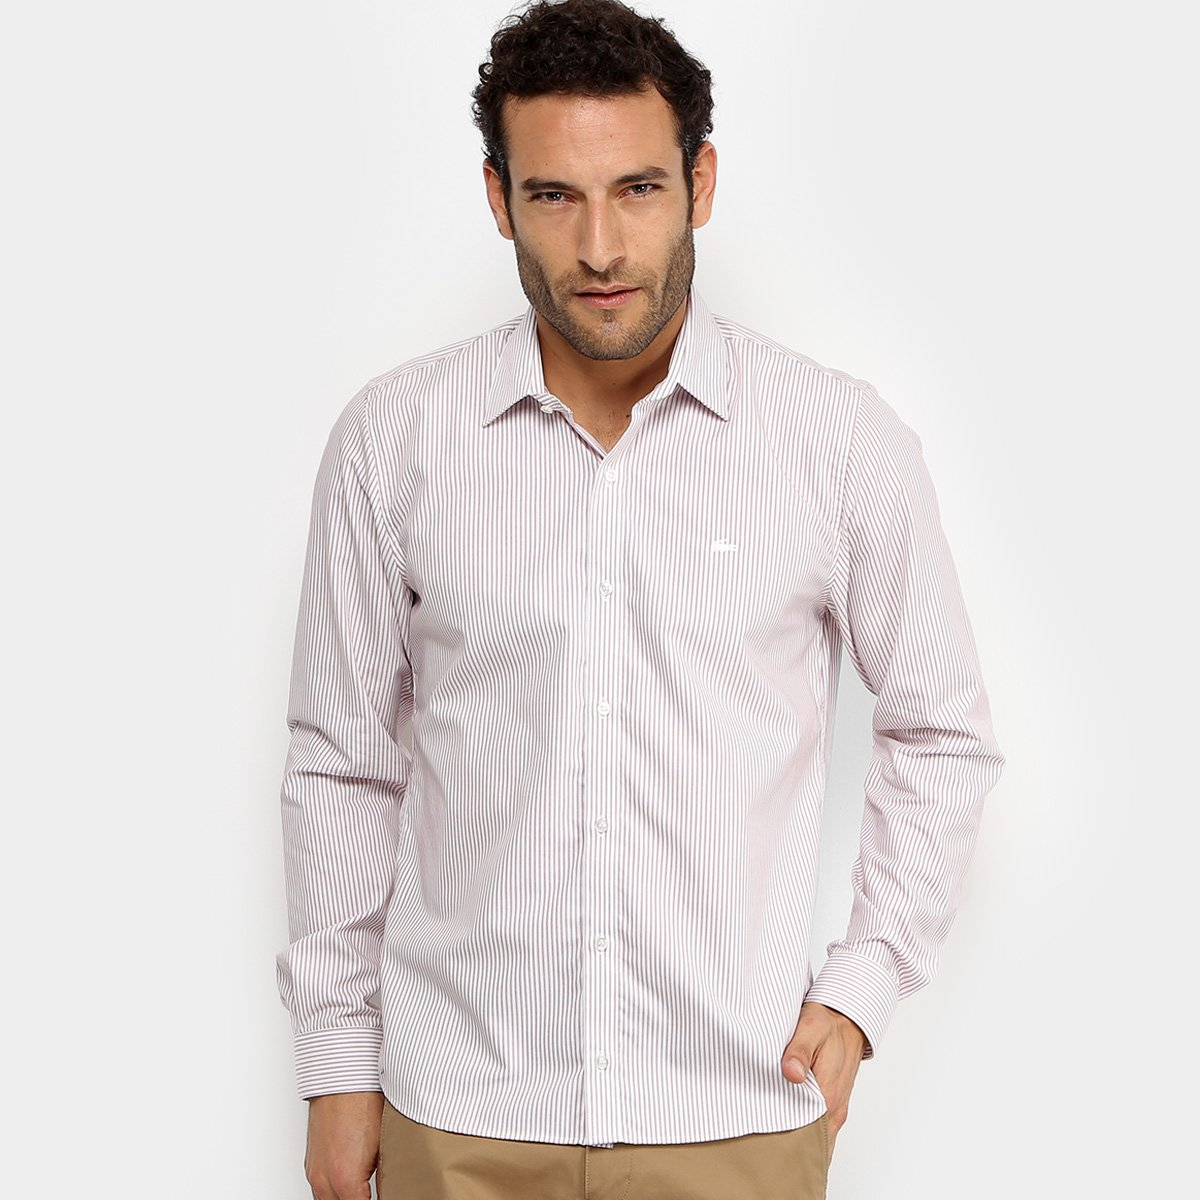 Camisa Listrada Lacoste ML Regular Fit Masculina d7cdae7dca